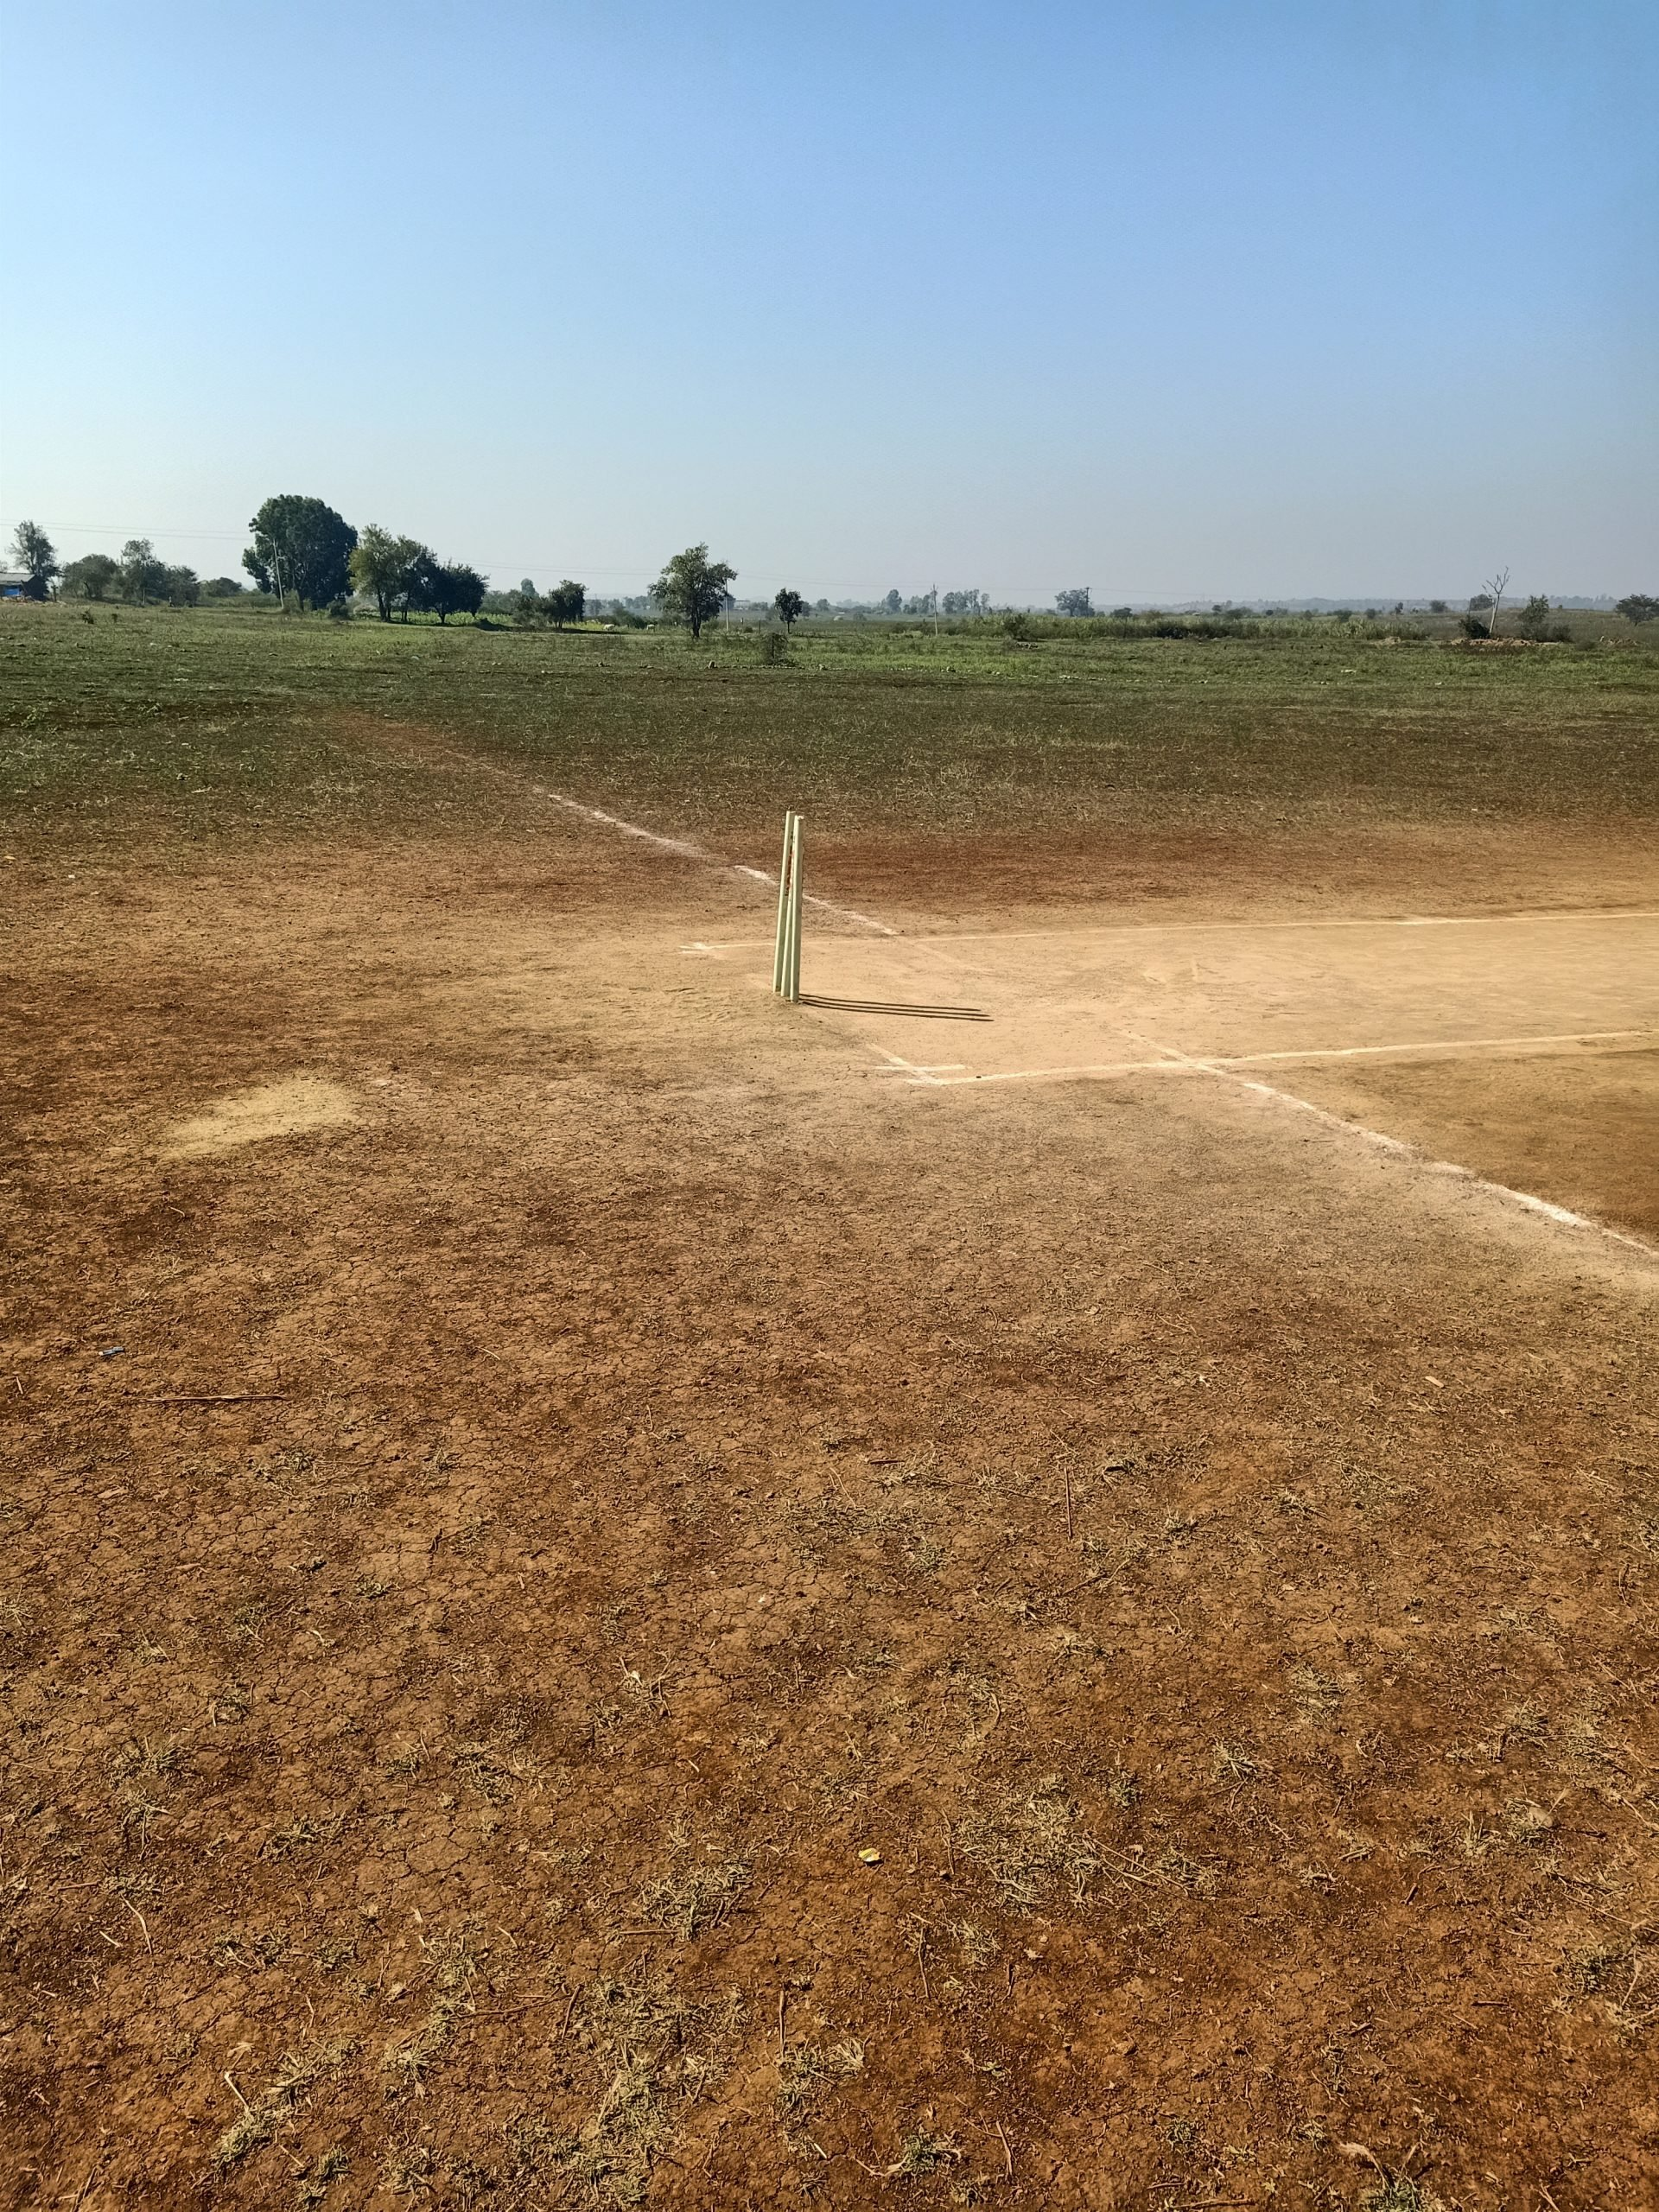 Cricket pitch side view